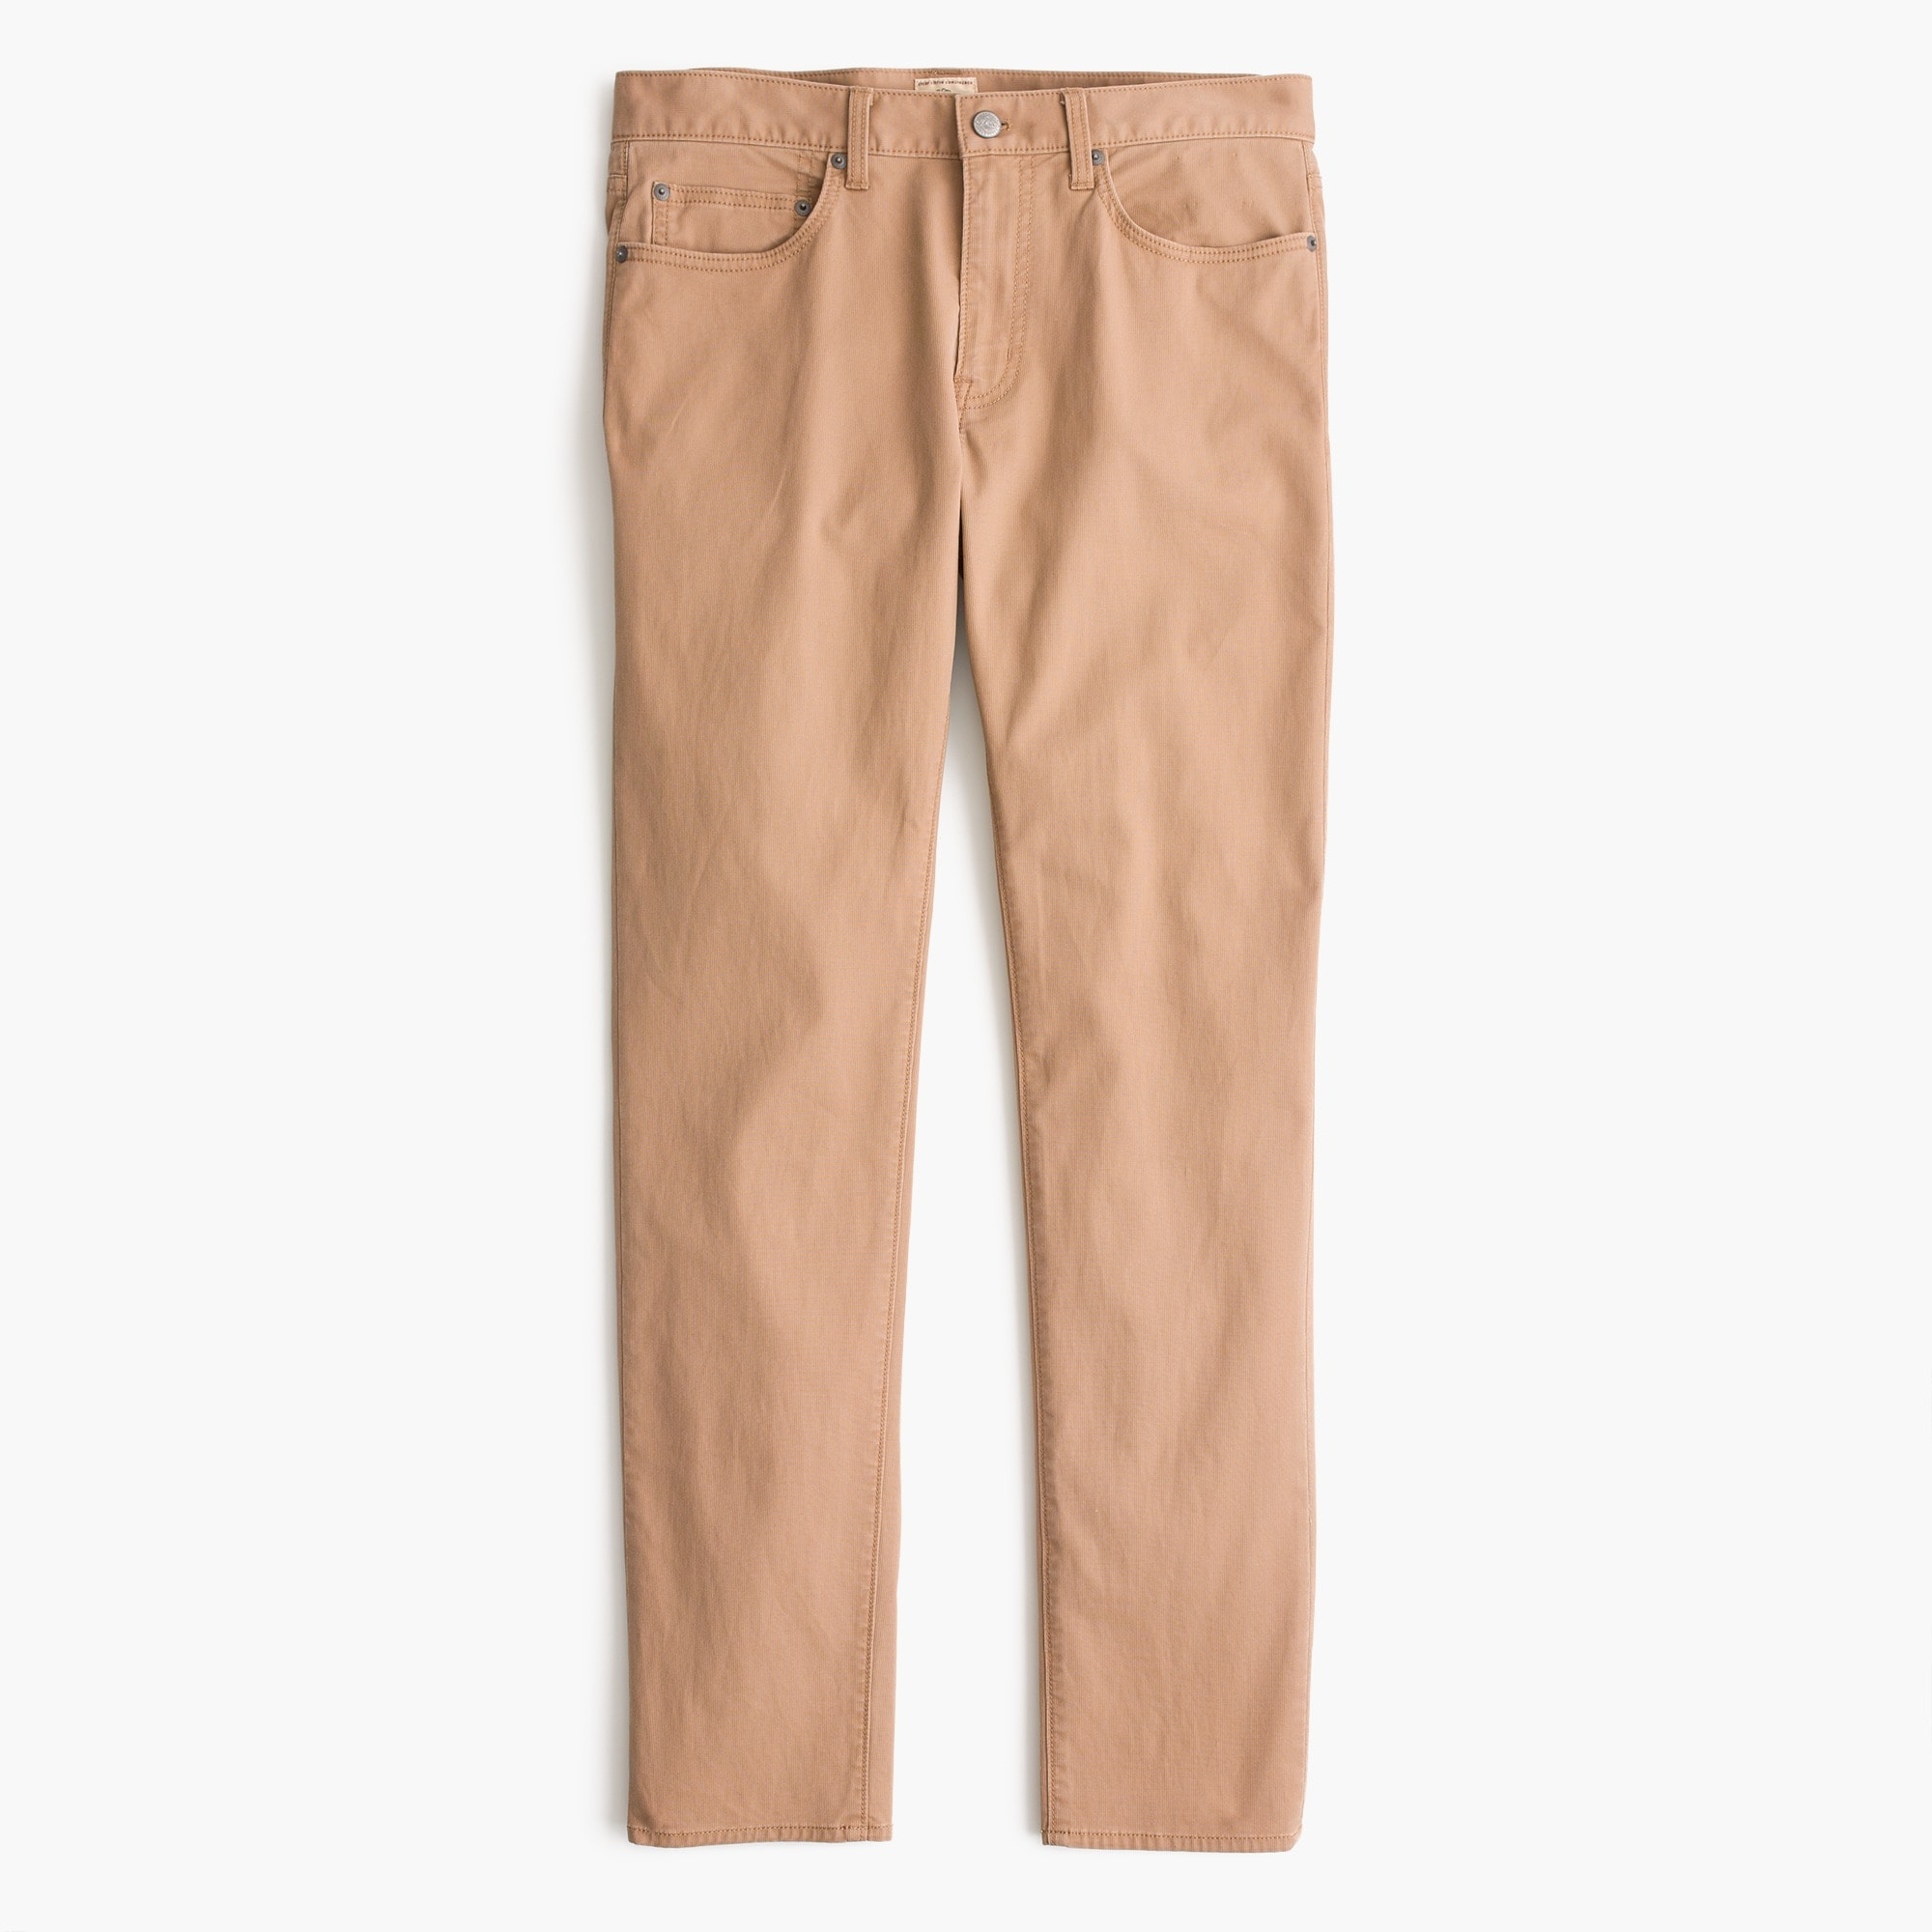 Image 4 for 484 Slim-fit pant in lightweight Bedford cord